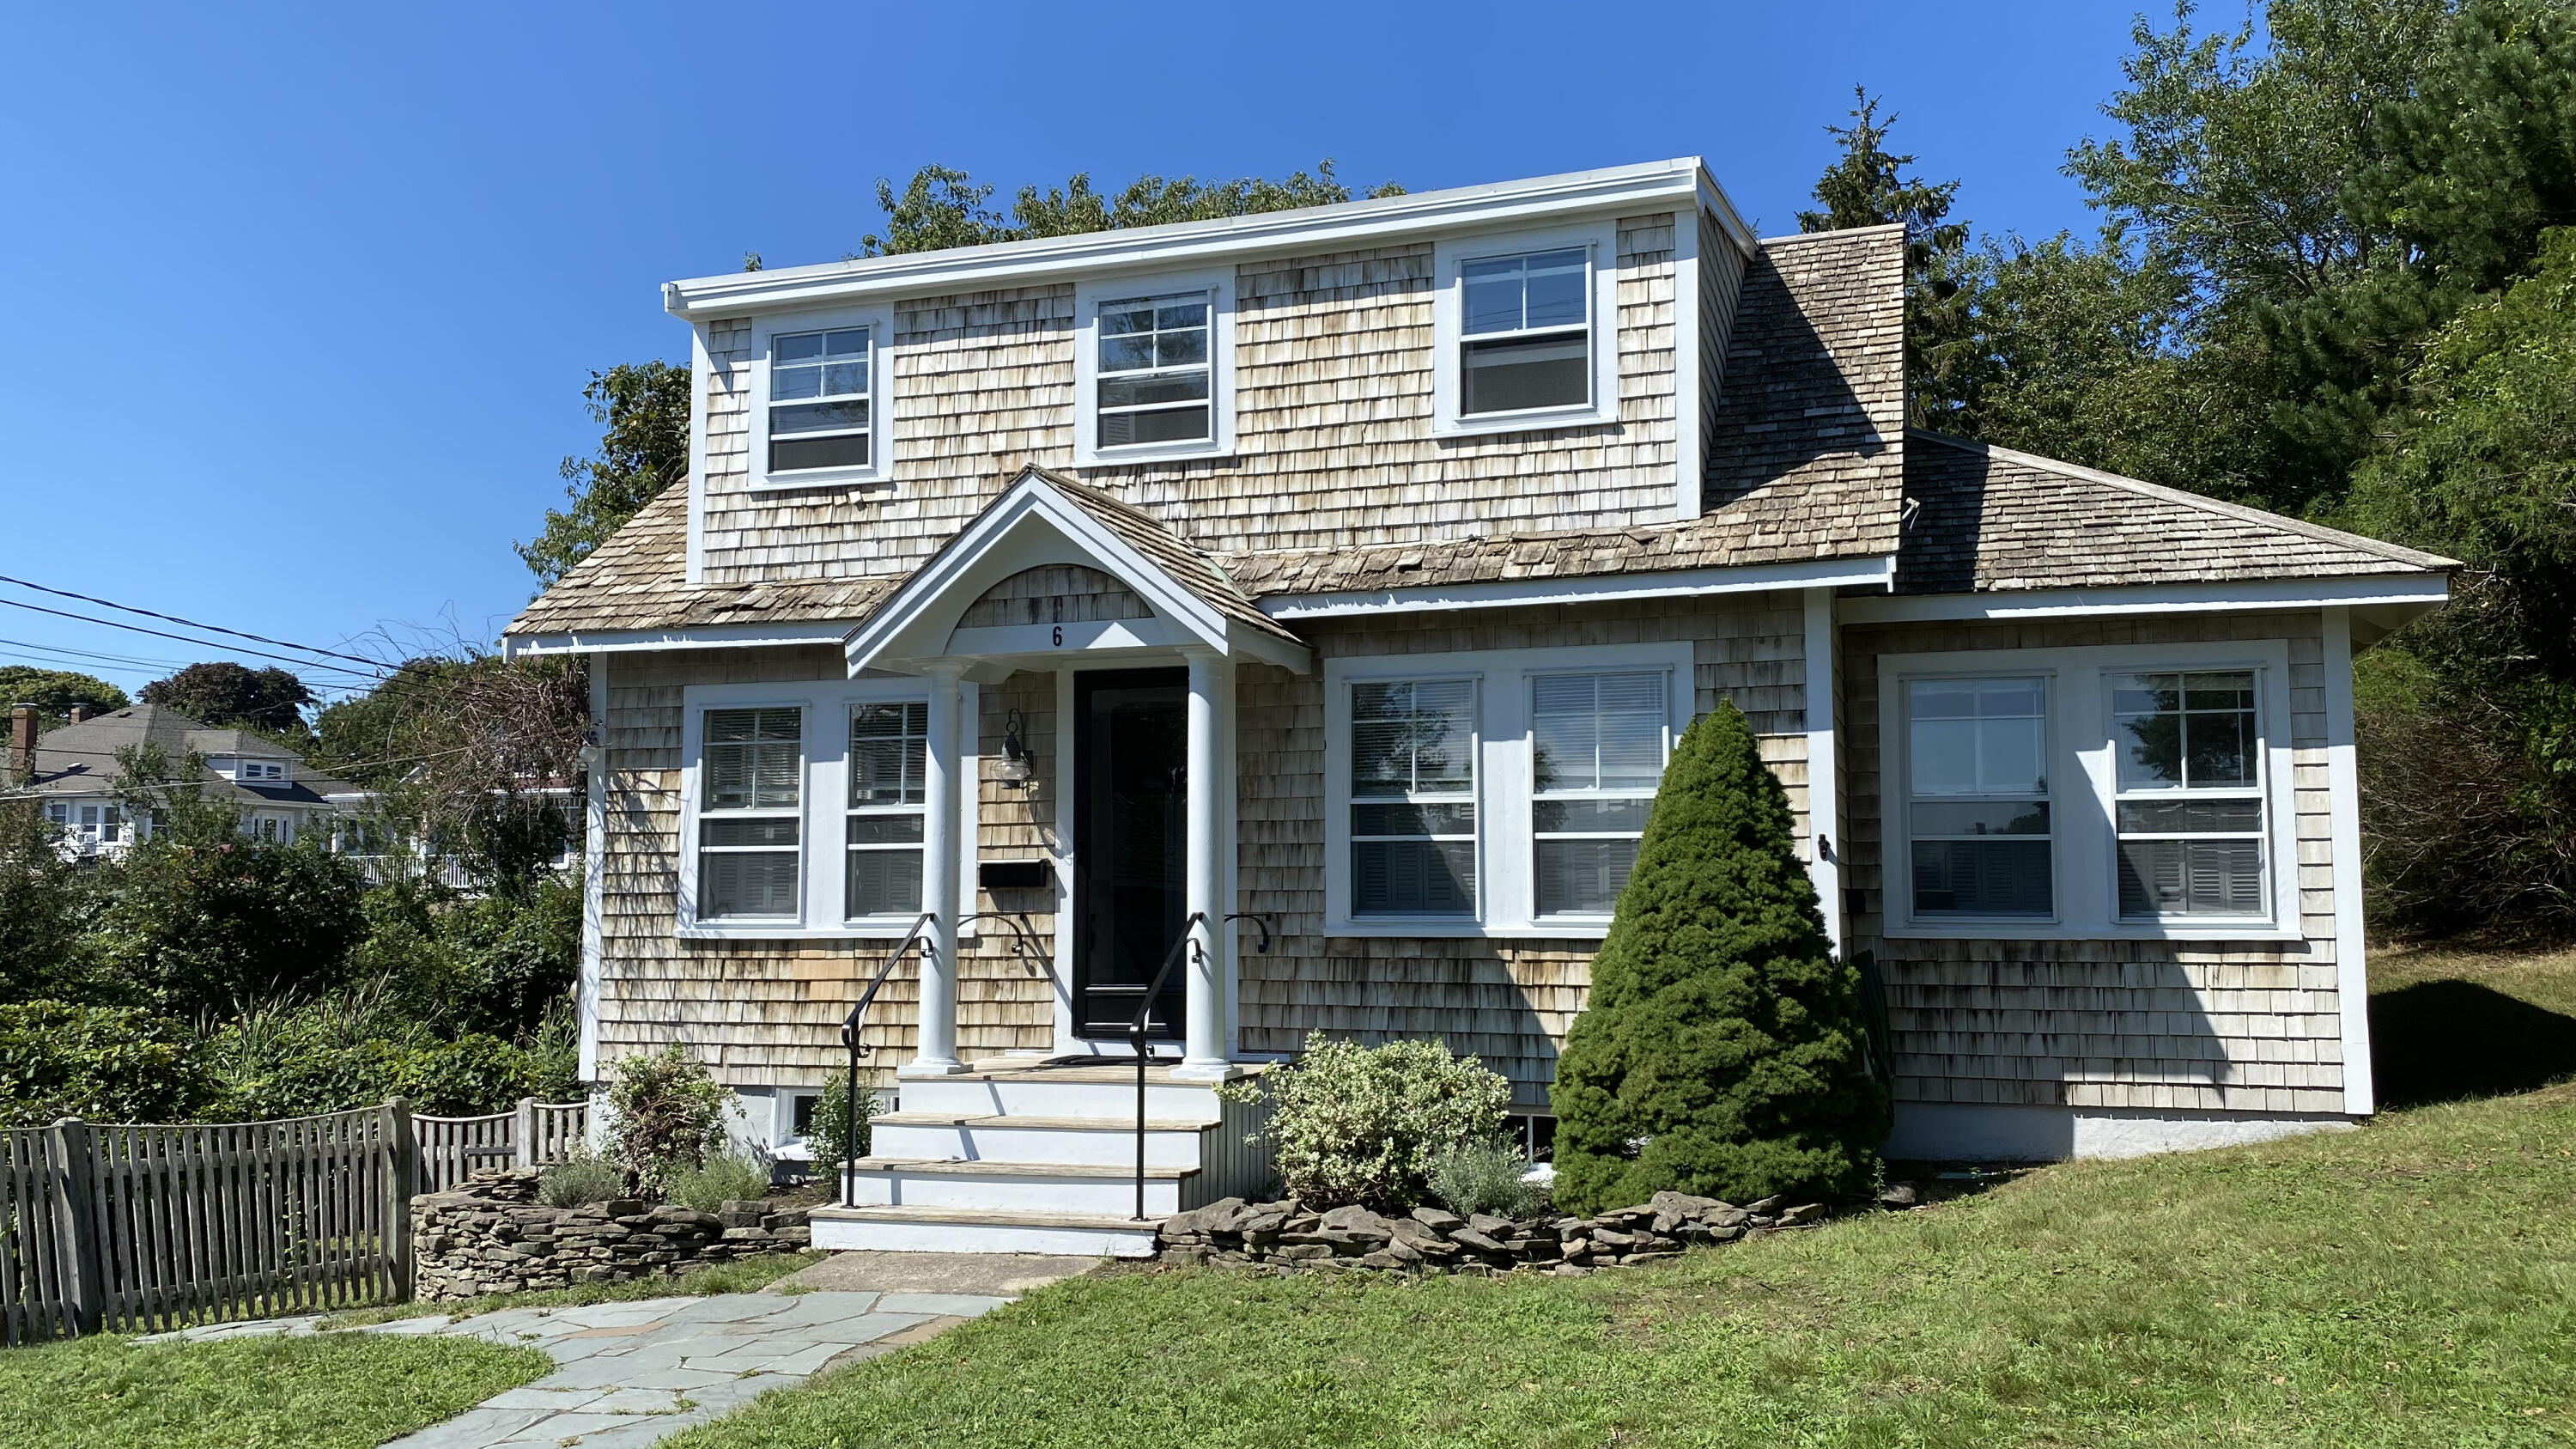 6 Somerset Street, West Yarmouth MA, 02673 details